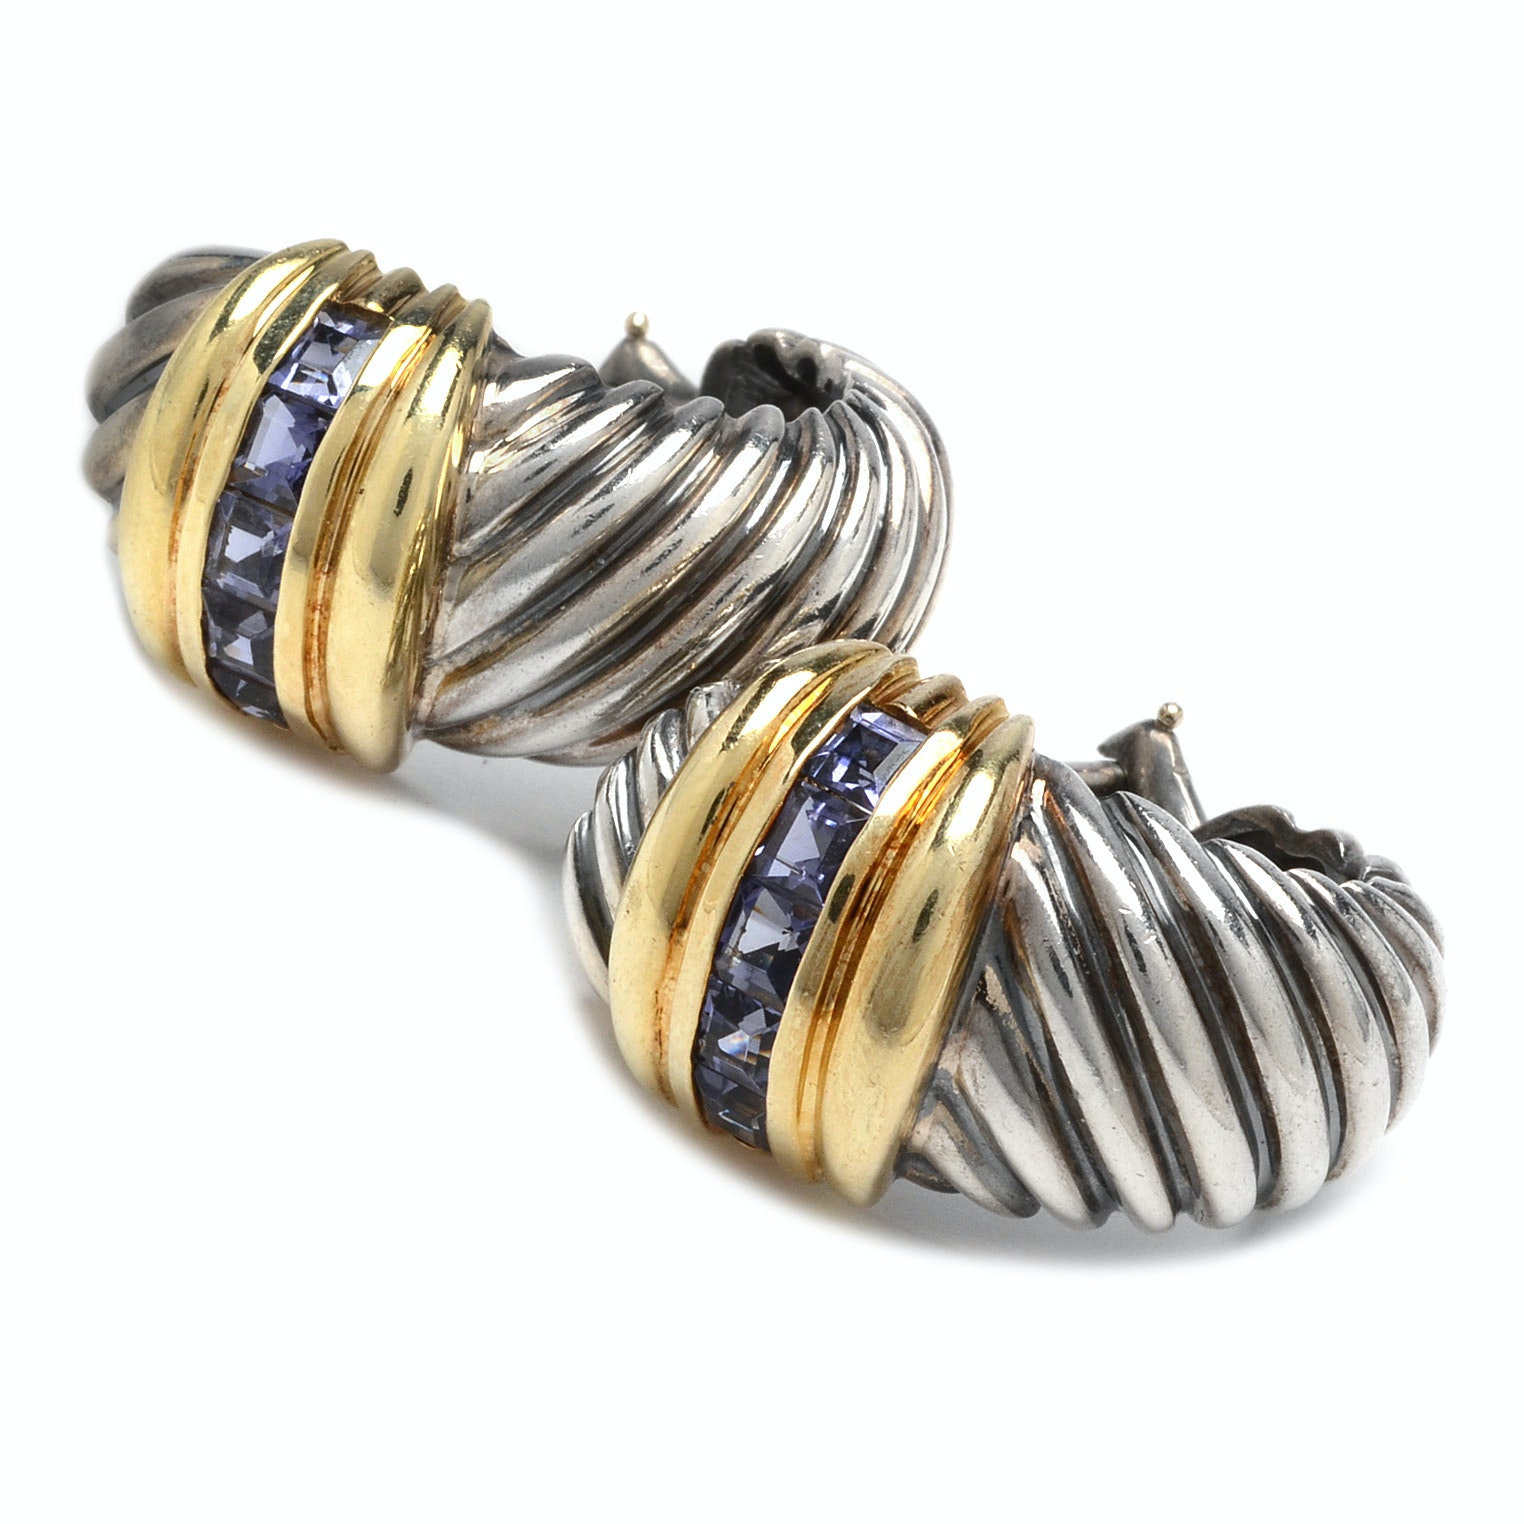 David Yurman Sterling Silver and Iolite Earrings with 14K Gold Accents